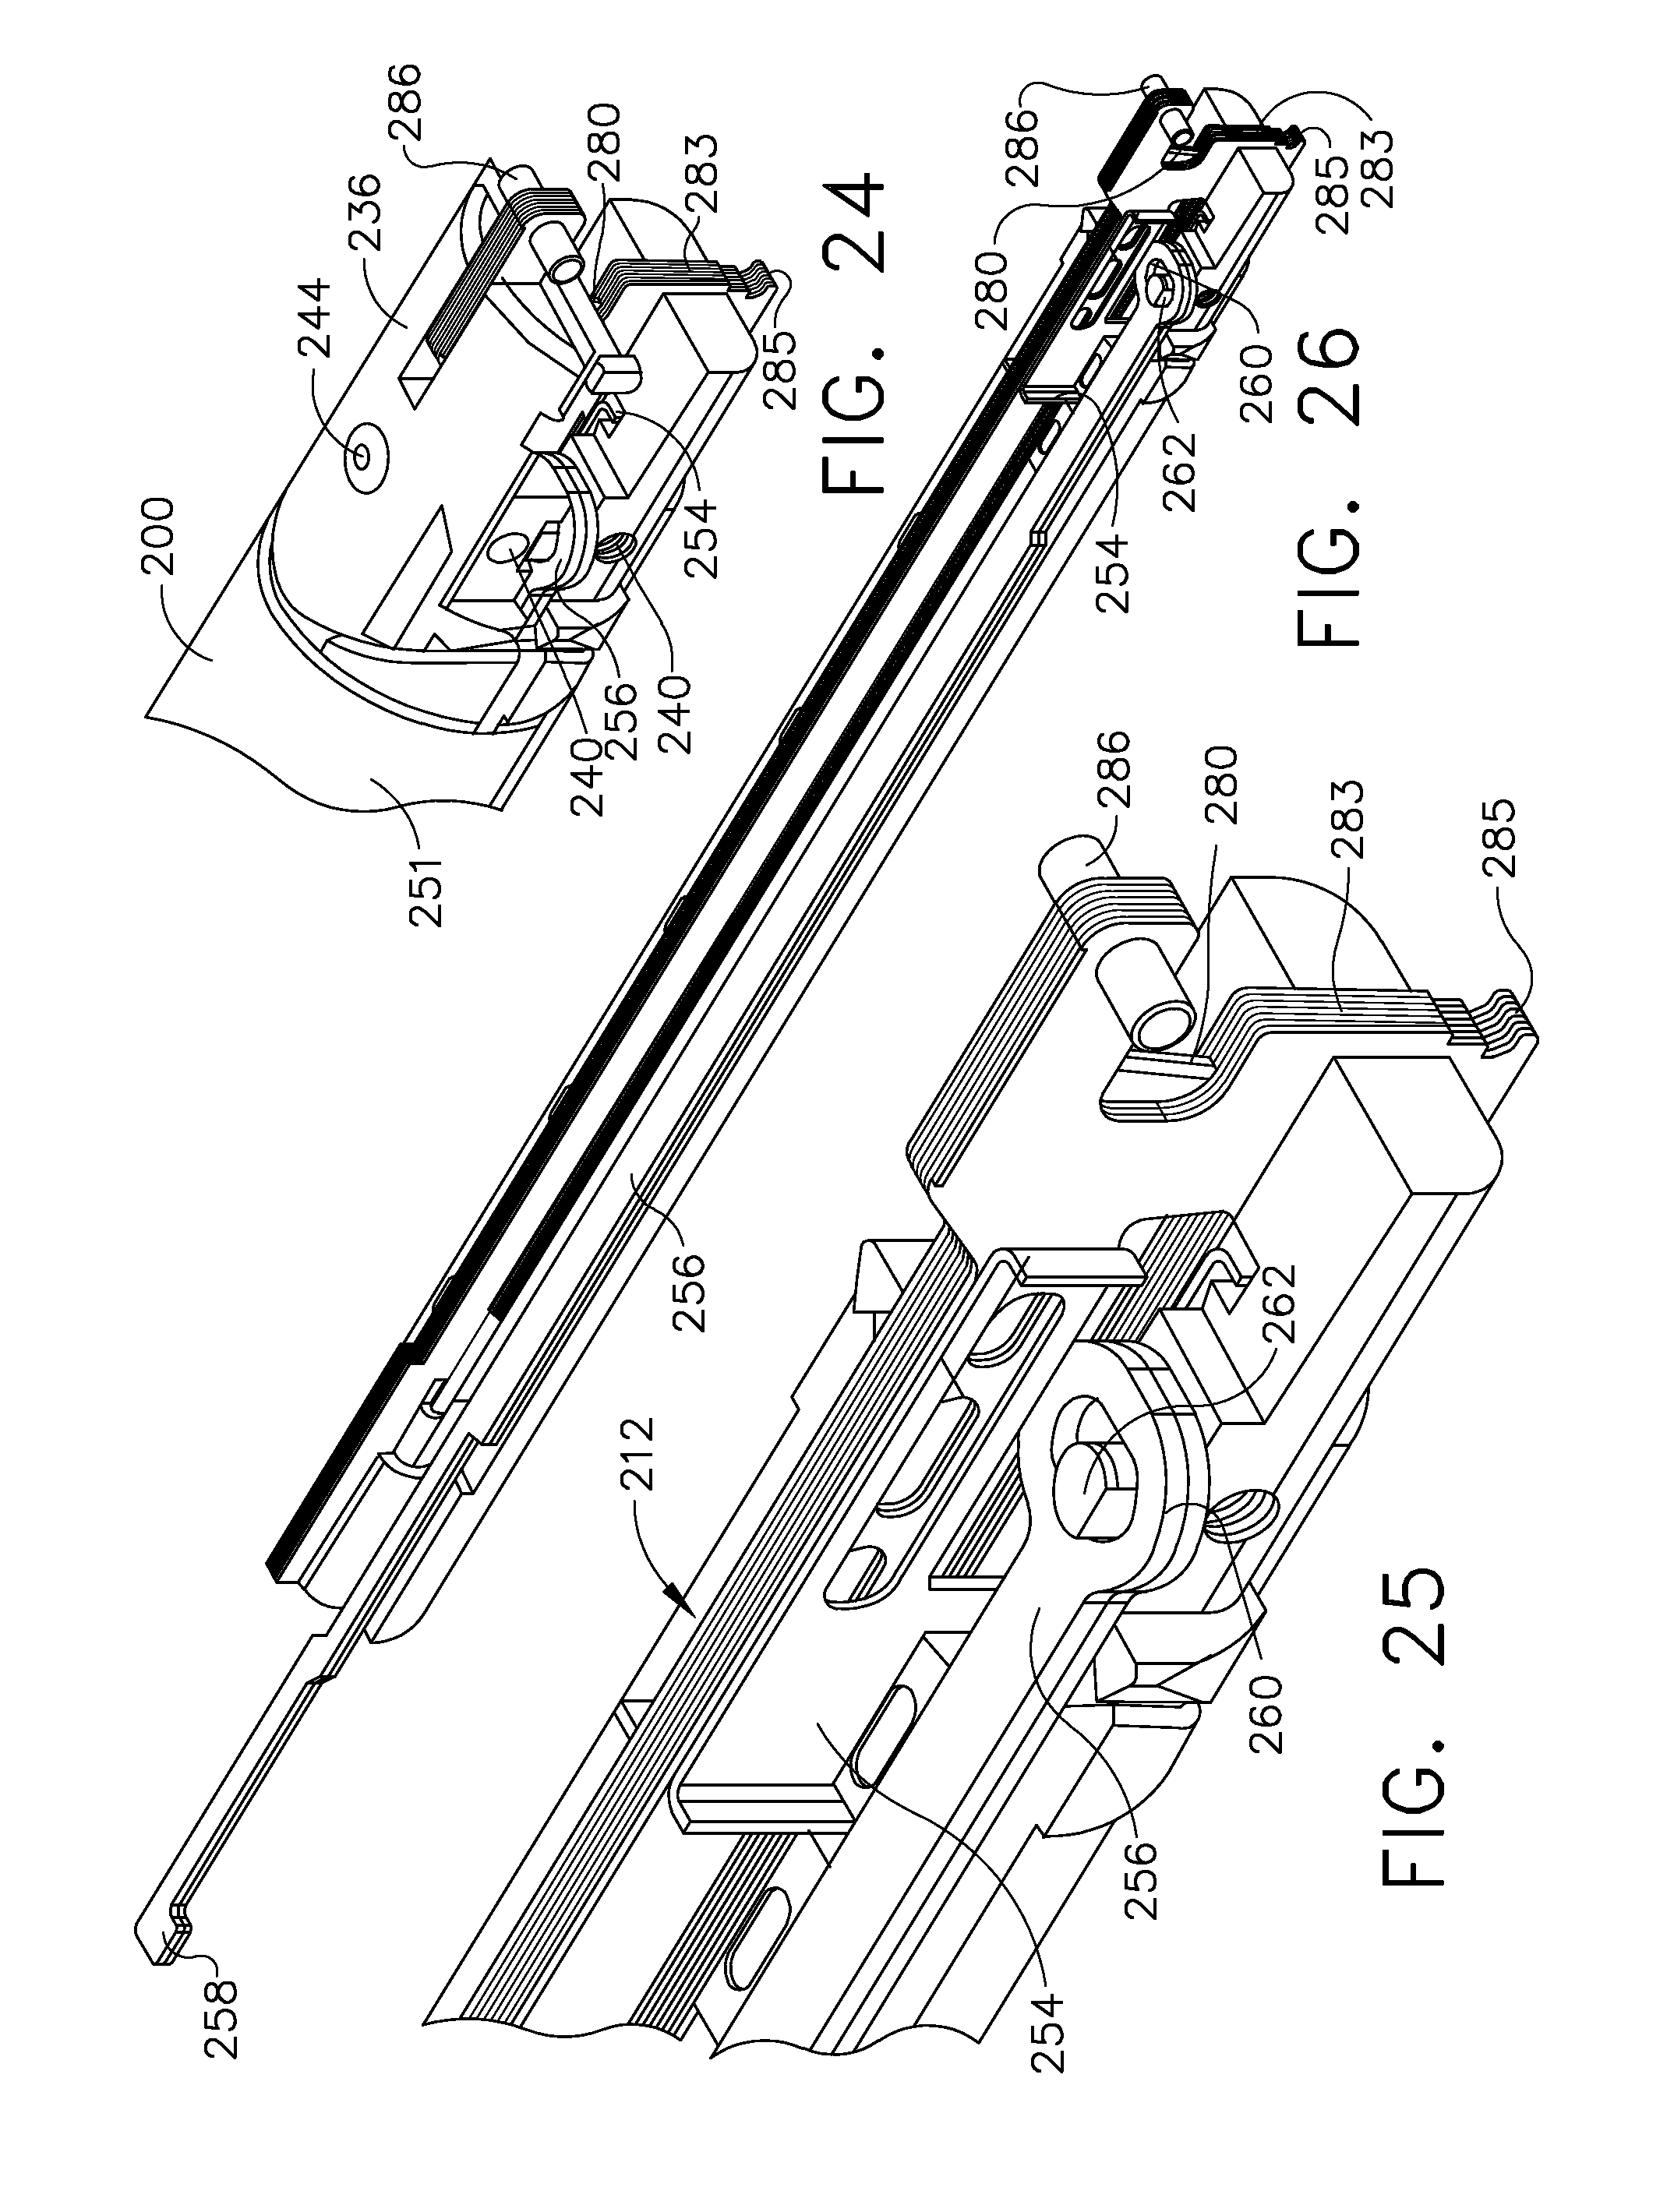 Us9585657b2 Actuator For Releasing A Layer Of Material From Morgan Olson Wiring Diagrams Surgical End Effector Google Patents